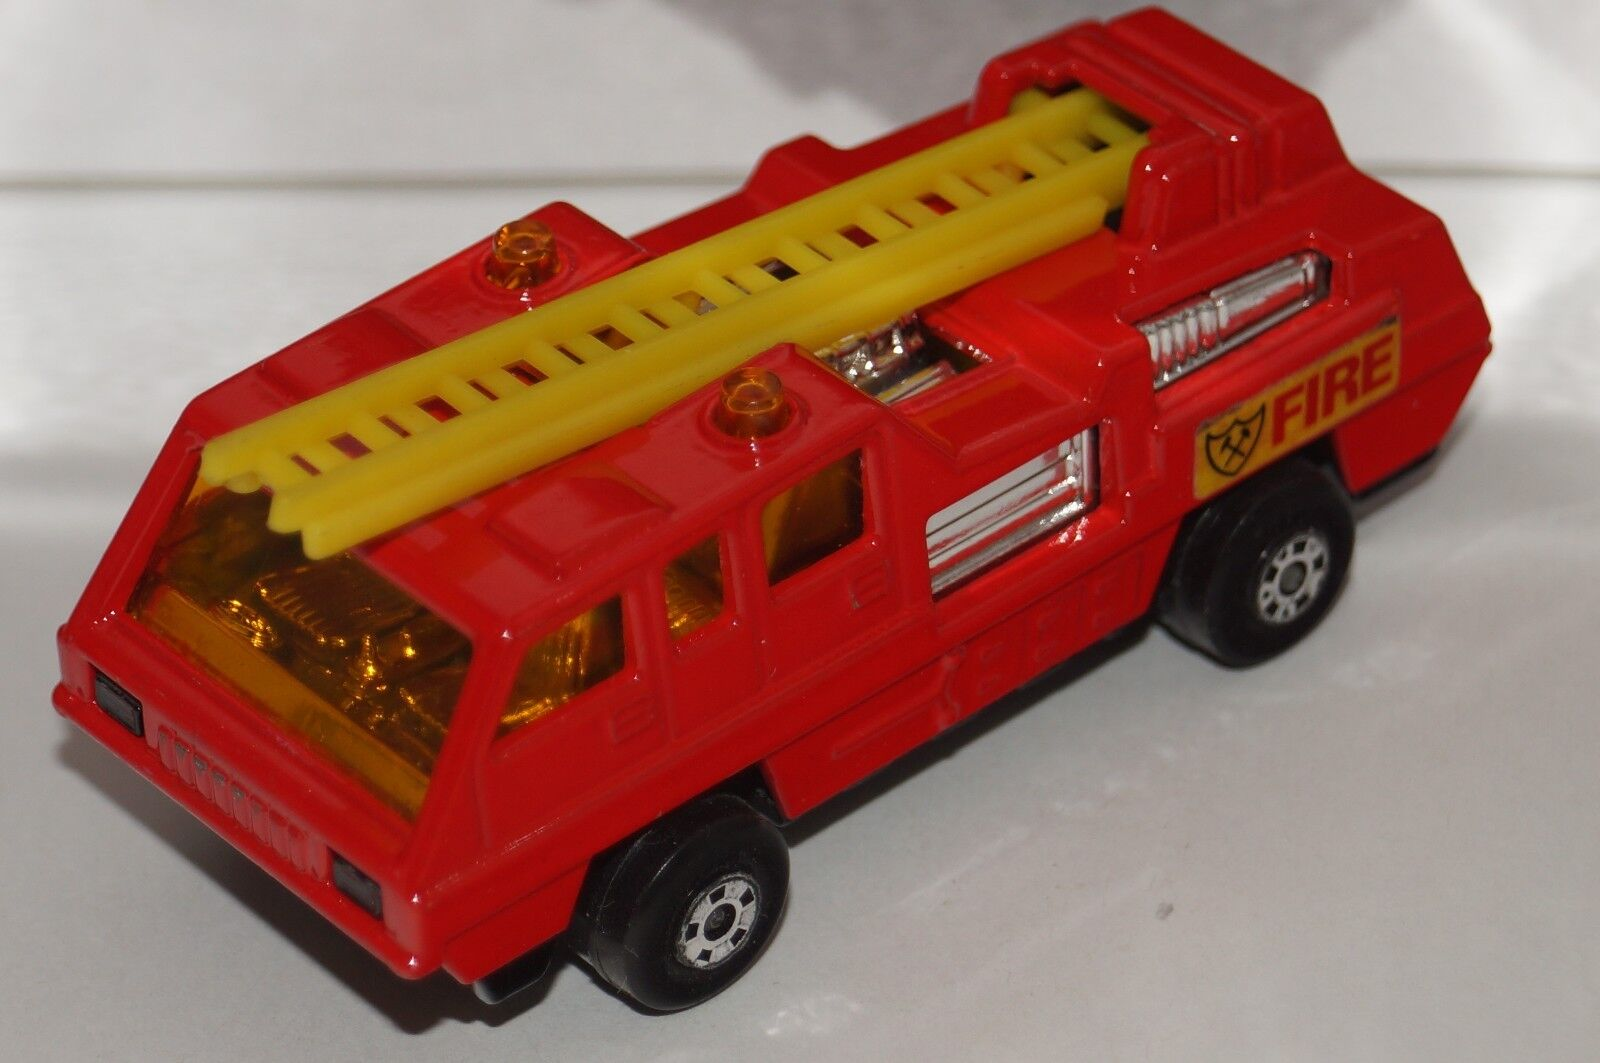 ORIGINAL Matchbox Superfast - Blaze Buster - No 22 - rosso color and giallo Ladder